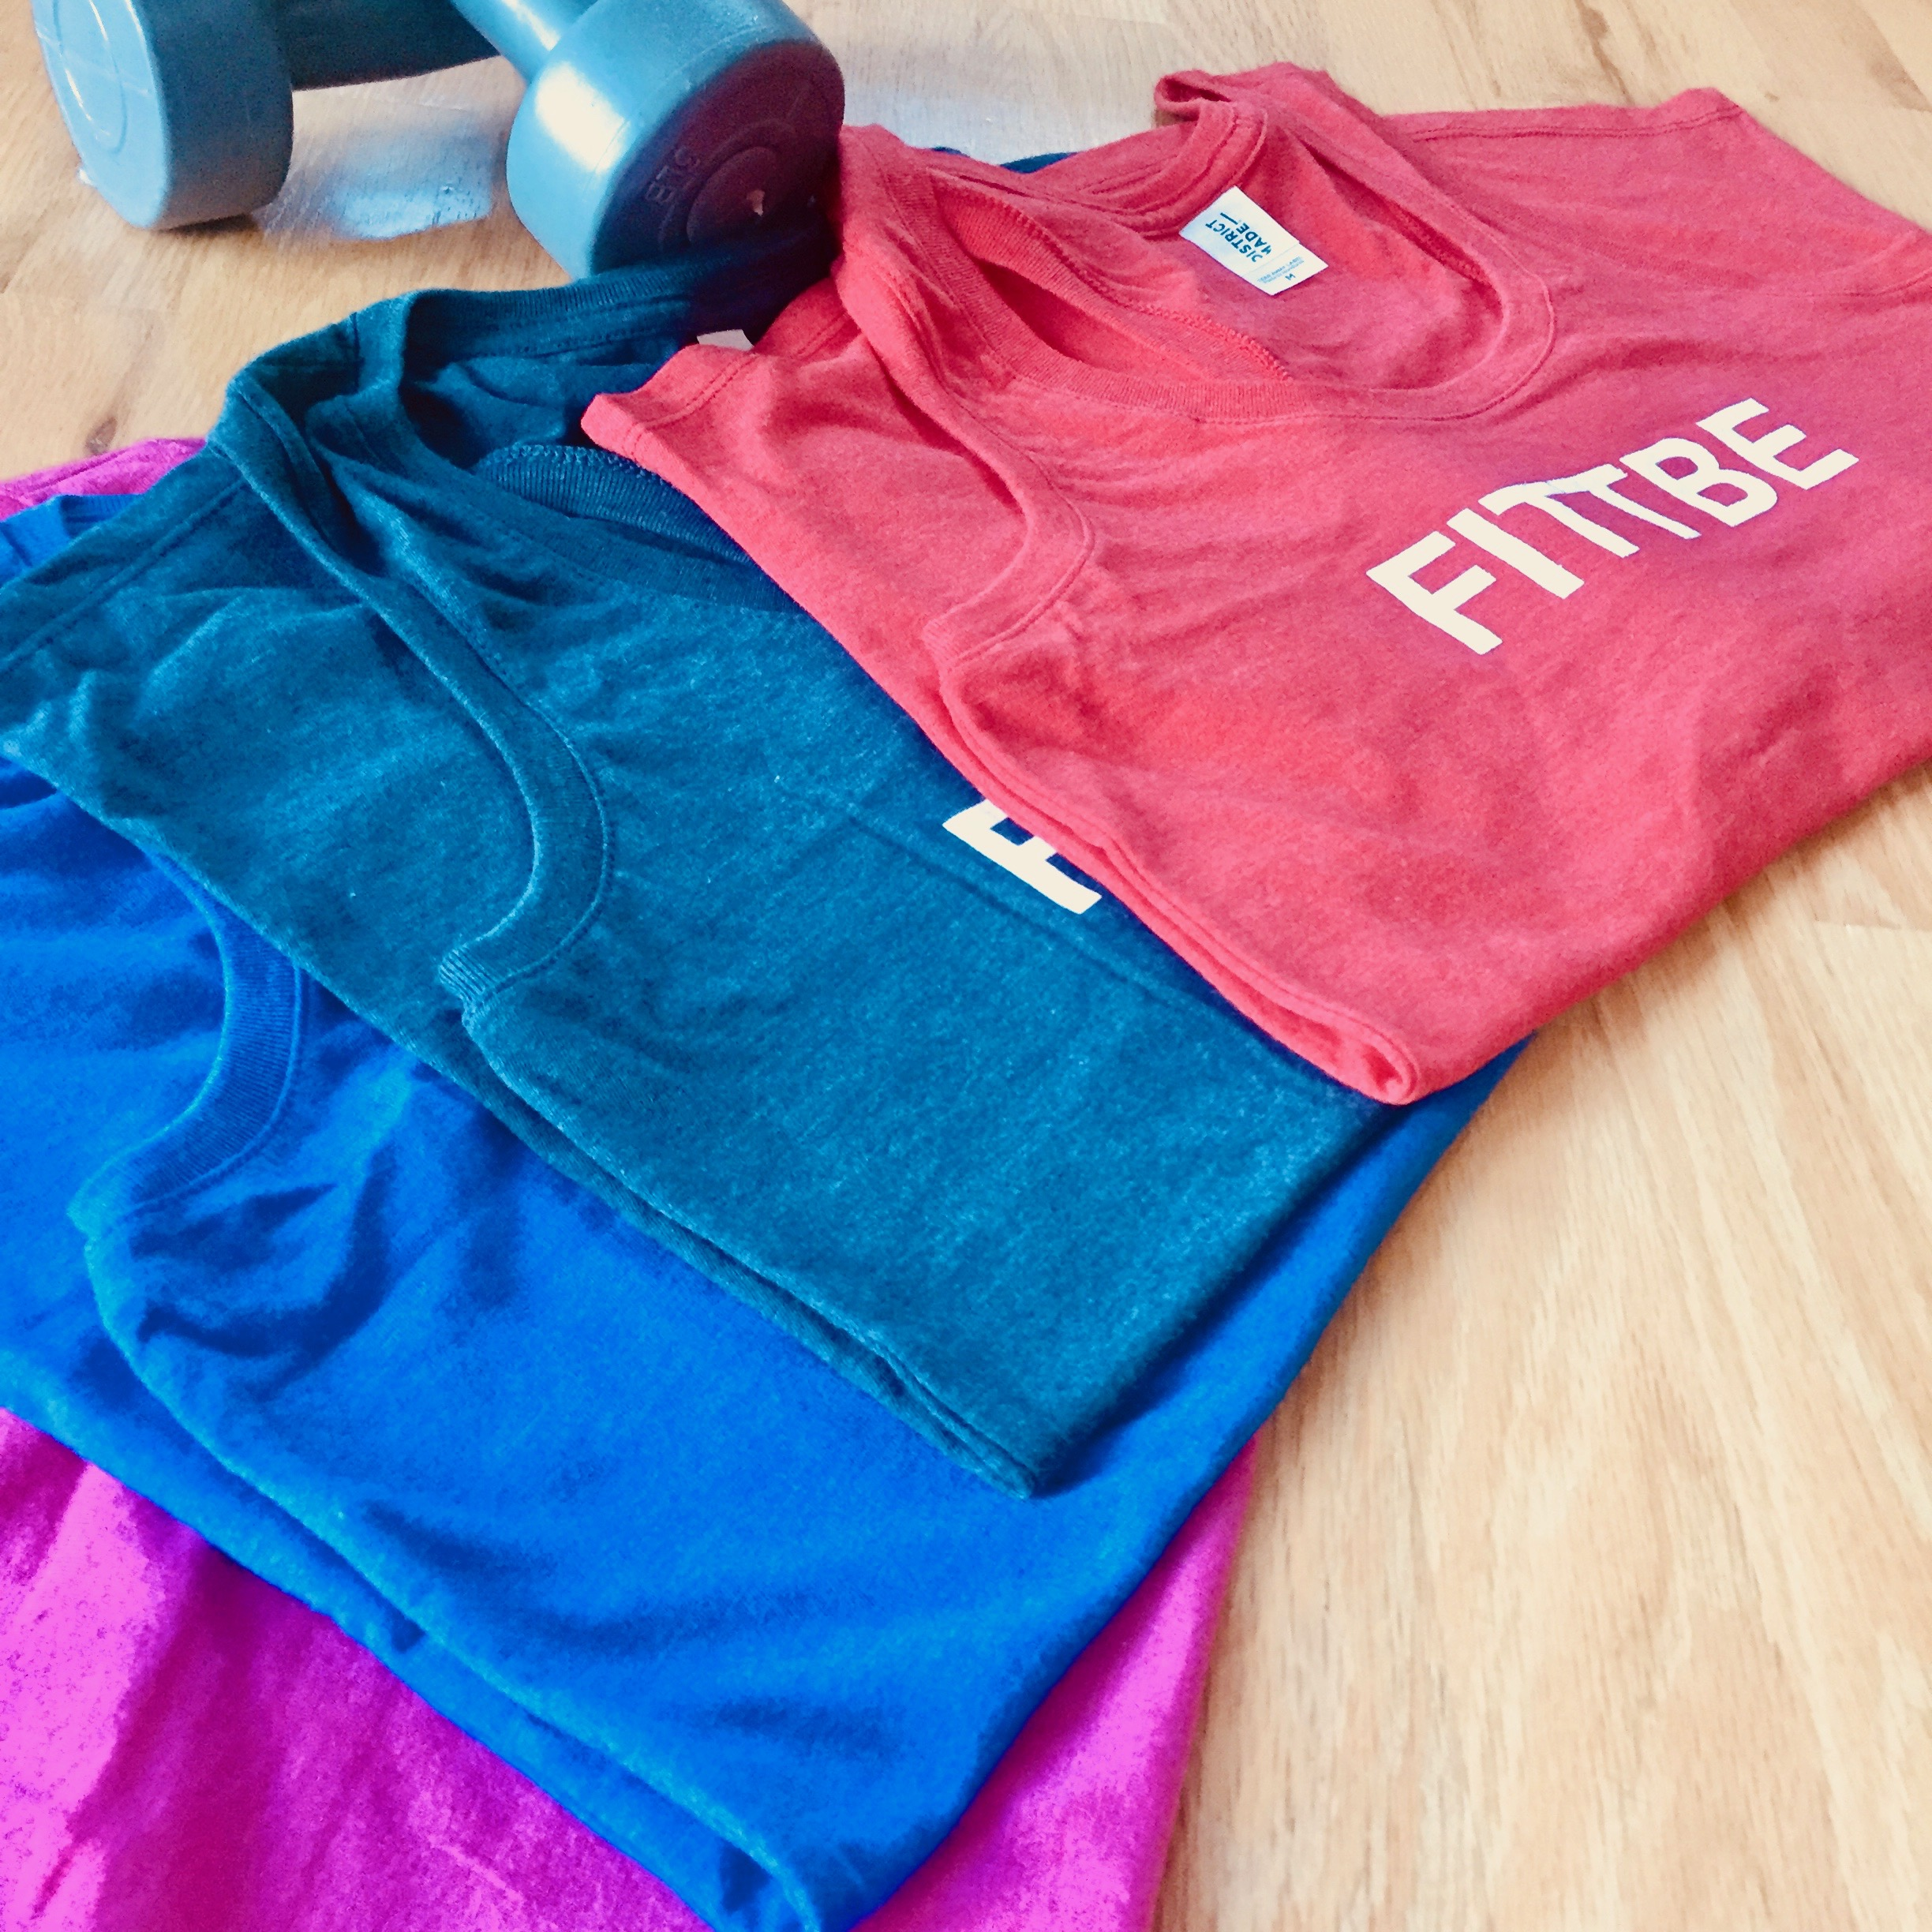 Win A Fittbe Tank: It's Contest Time Again!